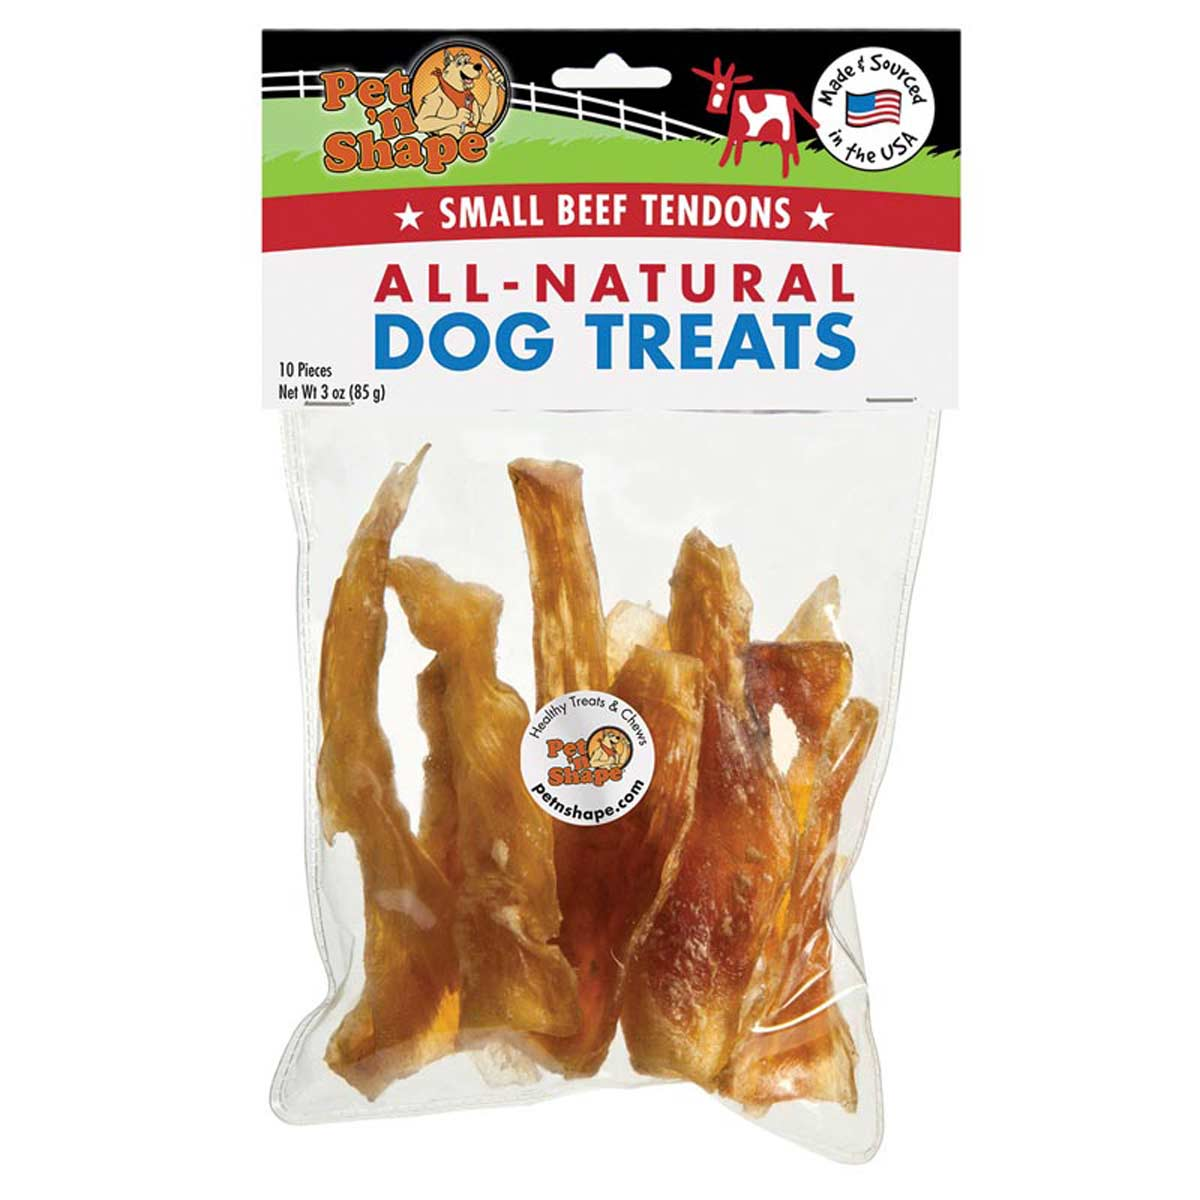 Pet 'n Shape All-Natural Dog Chewz Small Tendon 10 Pack Bag